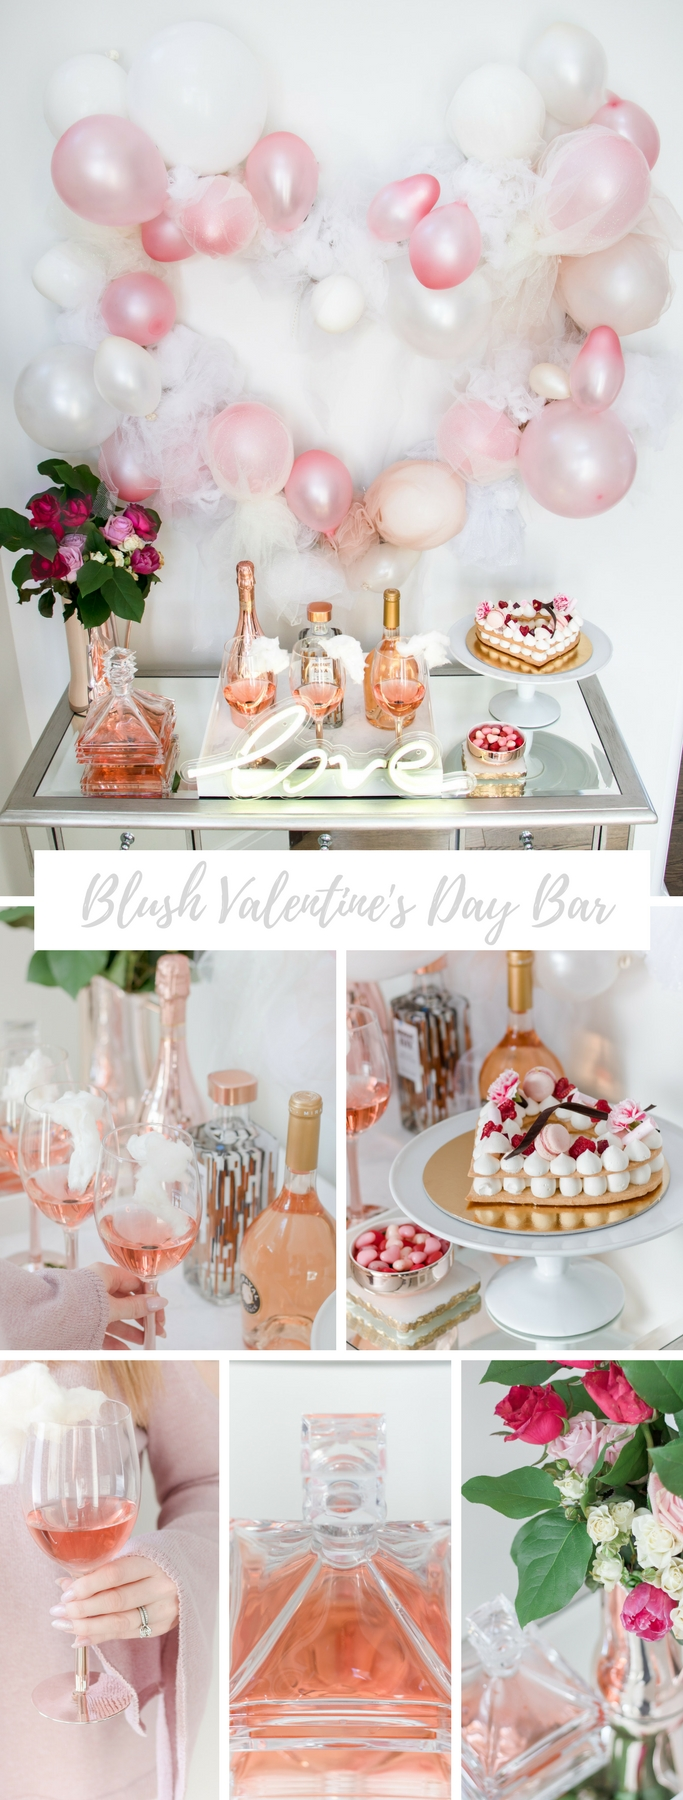 Blush pink Valentine's Day bar with tulle balloon heart and swoon worthy rose details